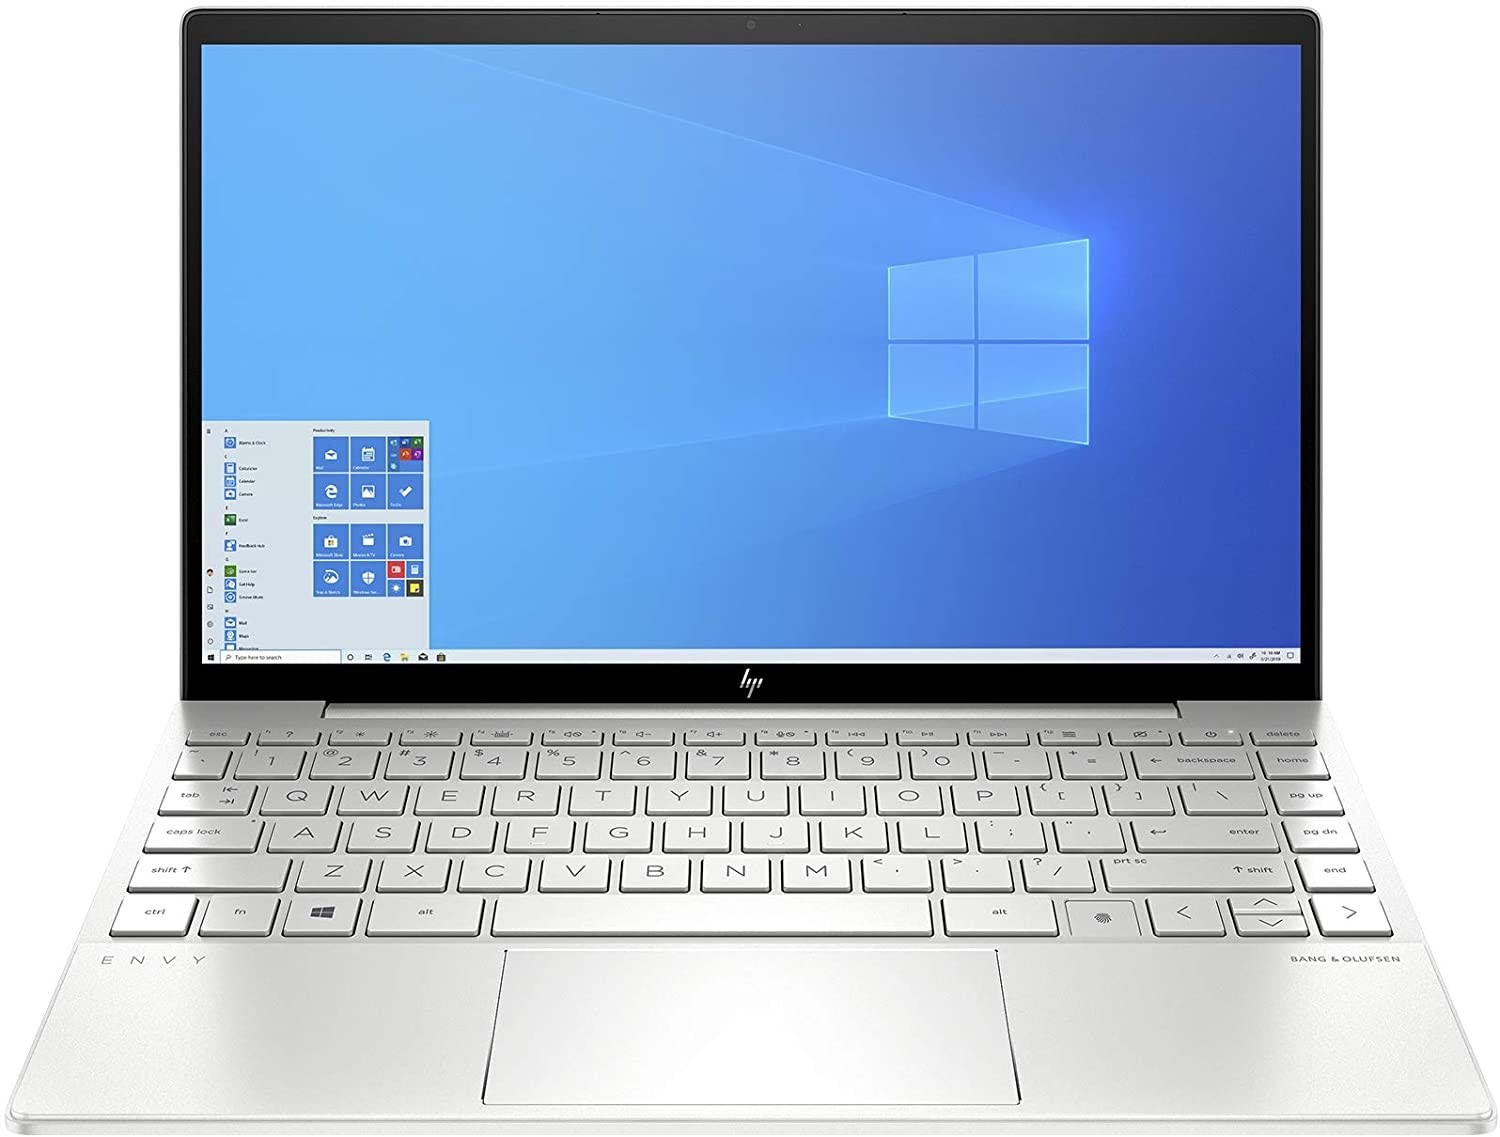 Refurbished laptops & desktops - HP ENVY 13-BA0003TU 13.3-INCH LAPTOP (10TH GEN I5-,8GB/512GB SSD//Windows 10/Natural Silver/1.3 Kg)